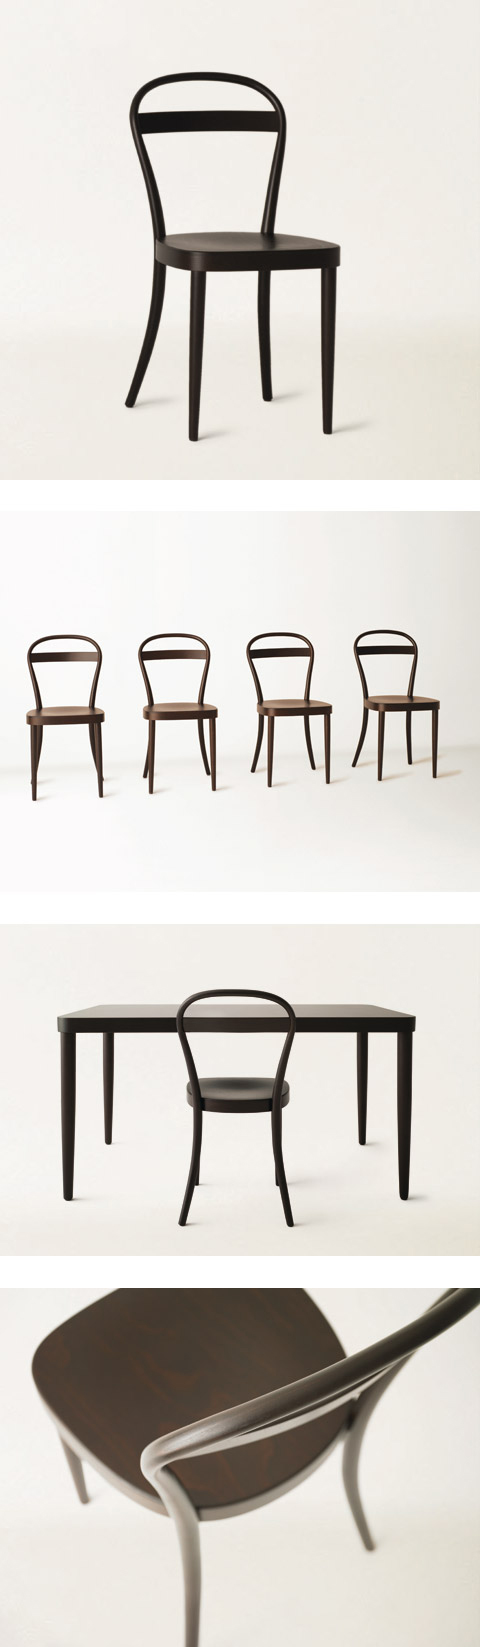 Japanese brand Muji and German furniture manufacturers Thonet have collaborated, designed by James Irvine (R I P)